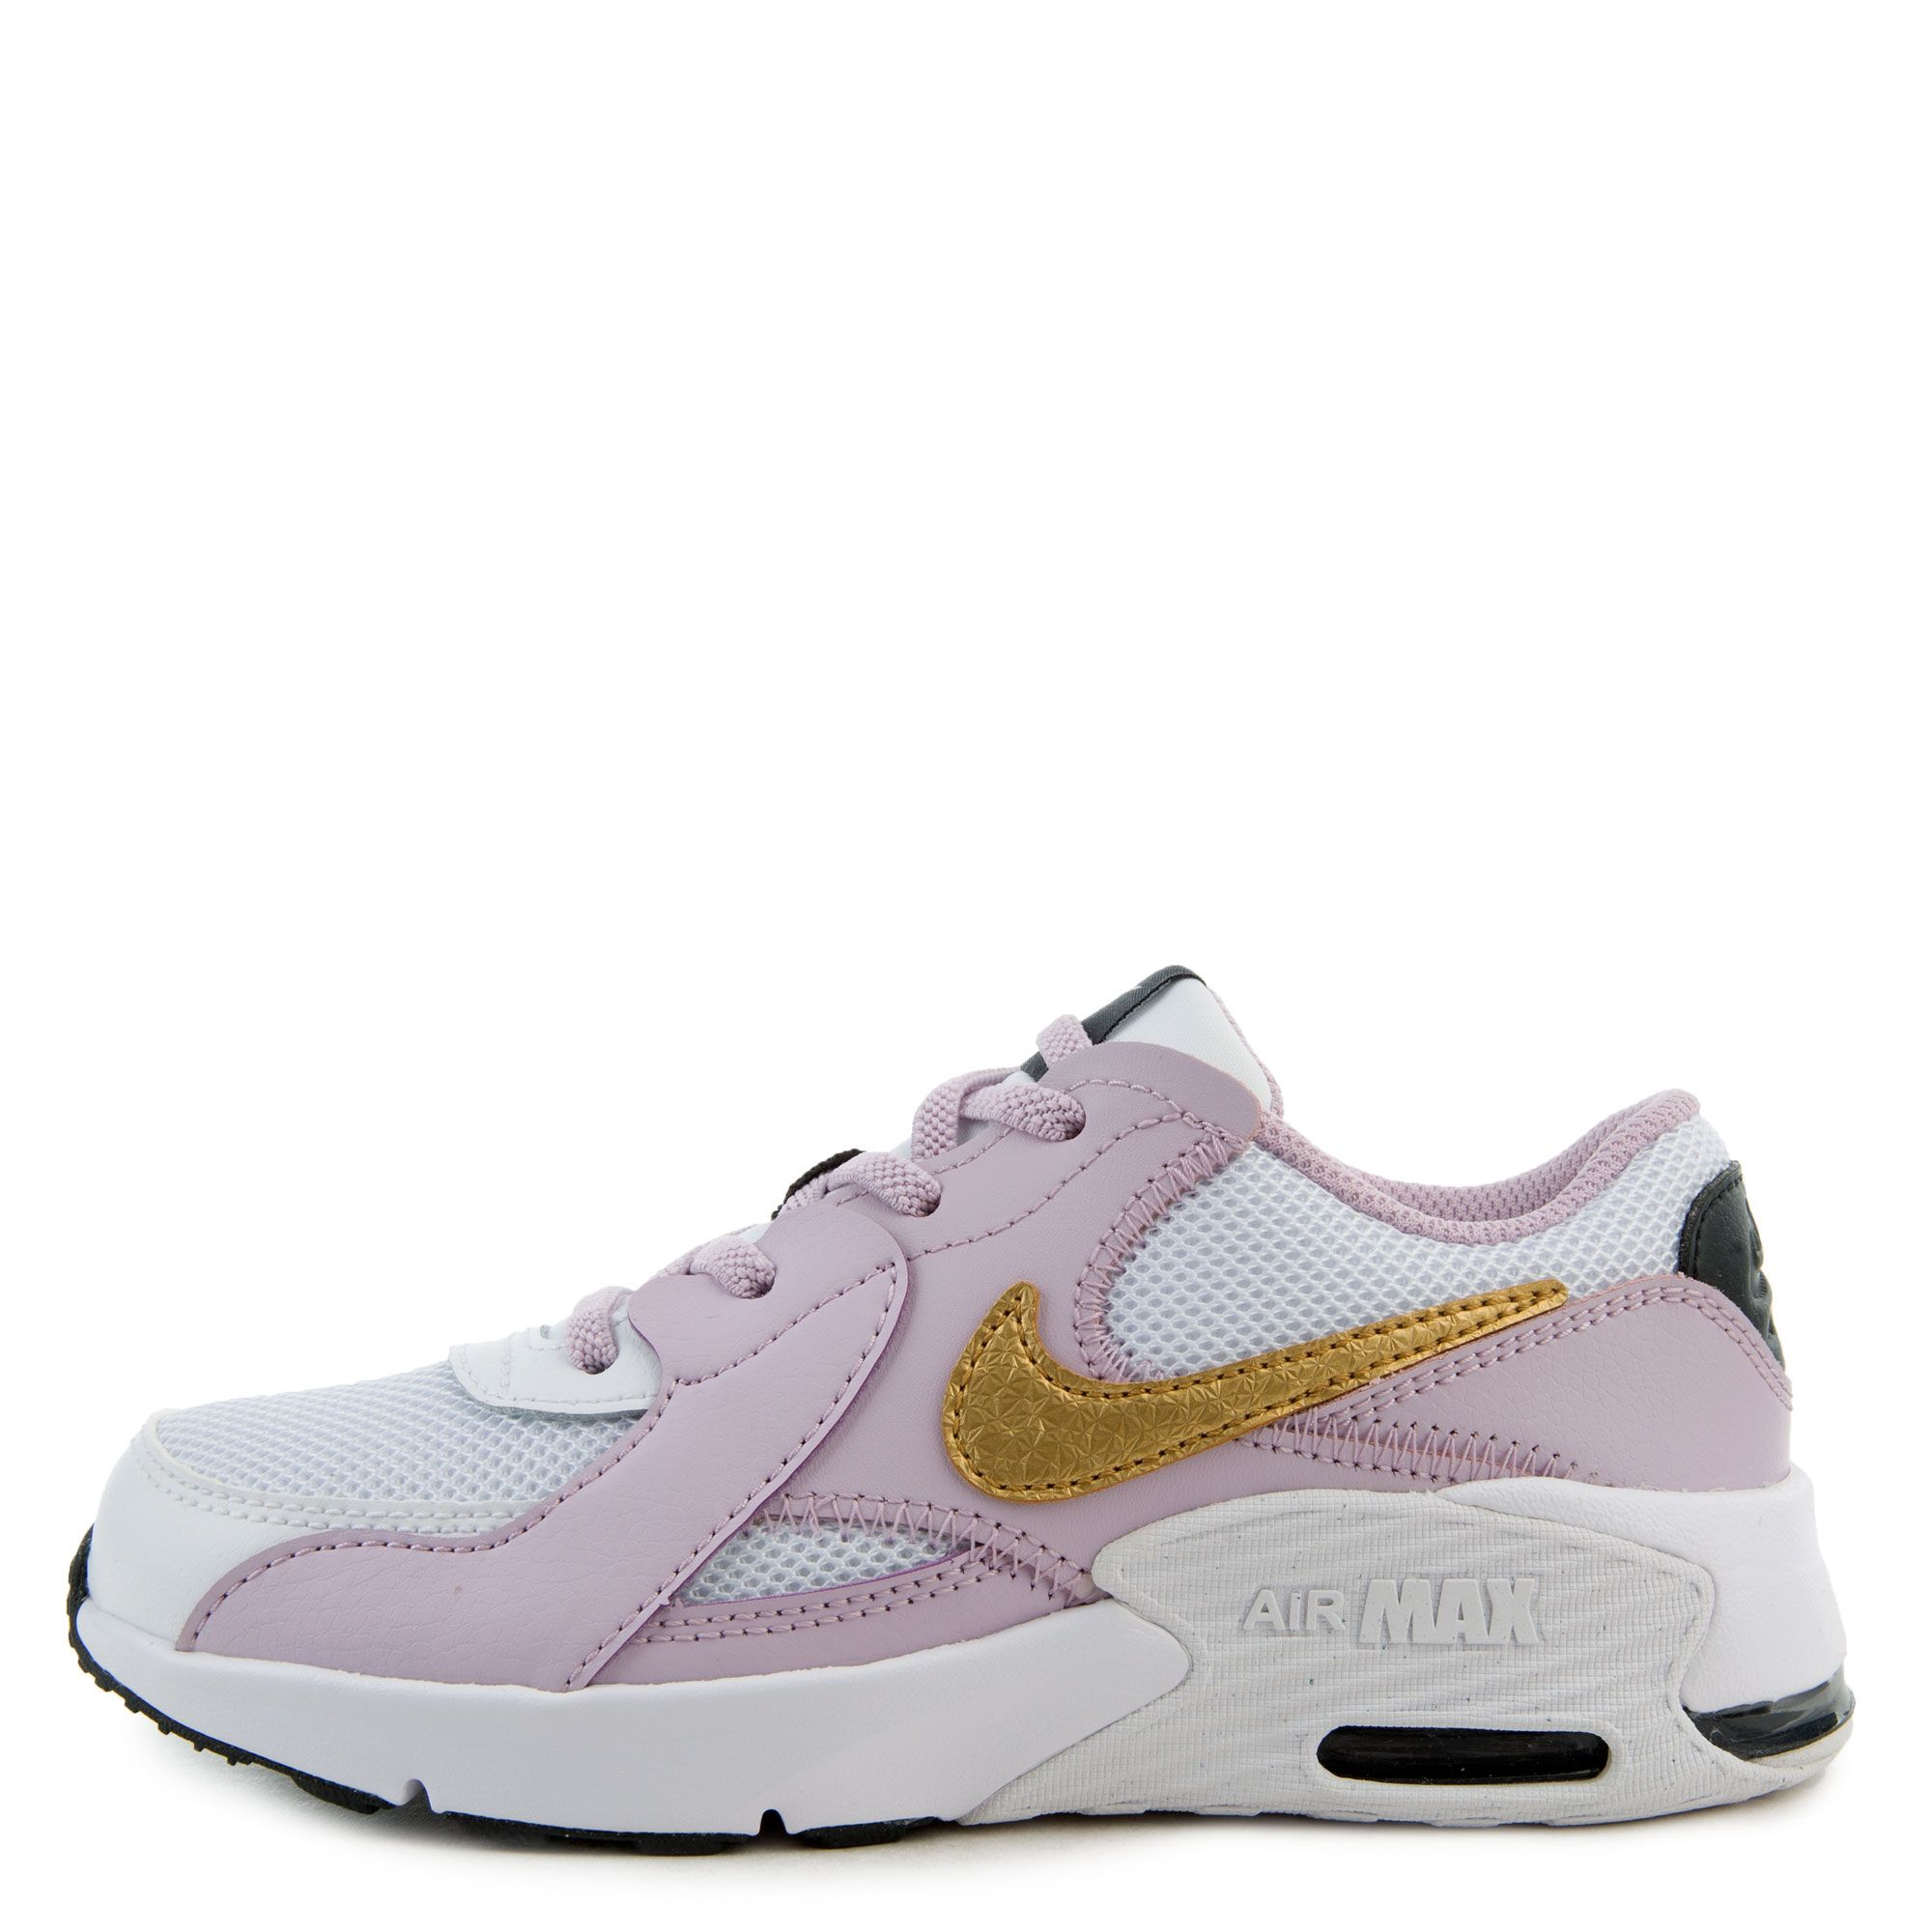 Air Max Excee White/Metallic Gold-Iced